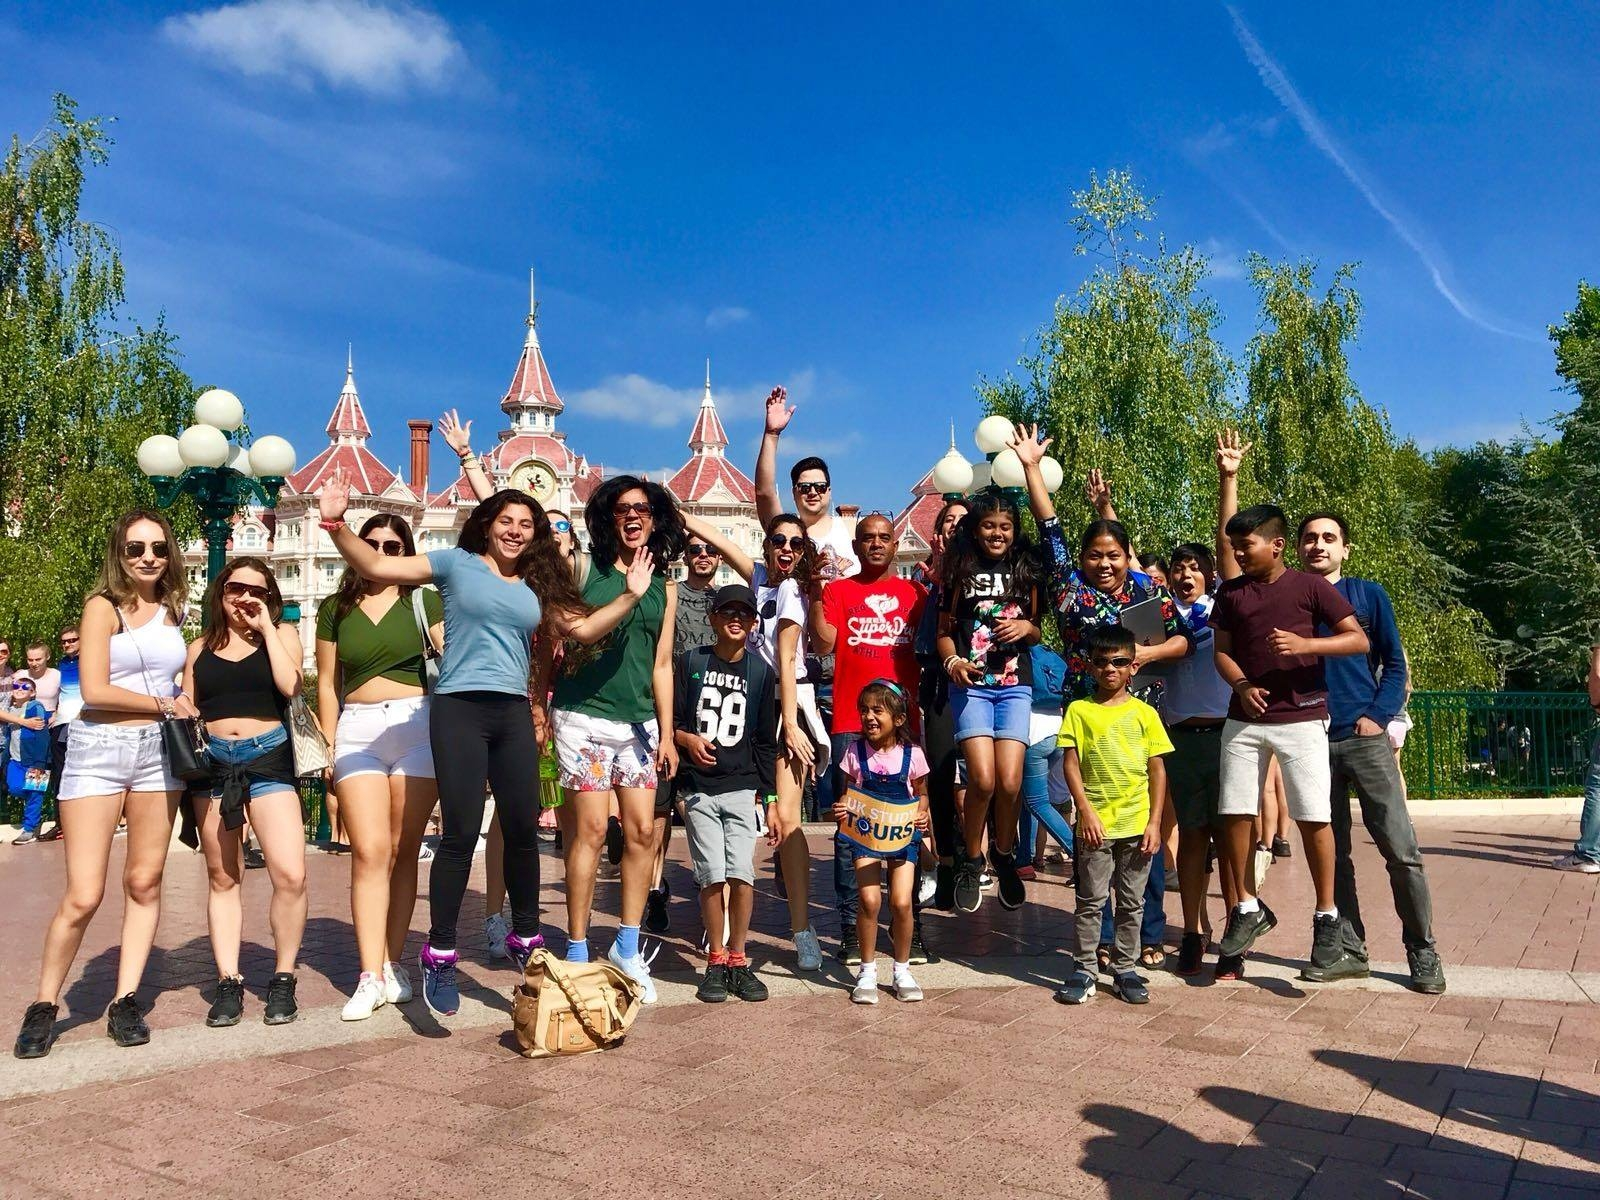 Paris Disneyland From London By Uk Study Tours With 1 Tour